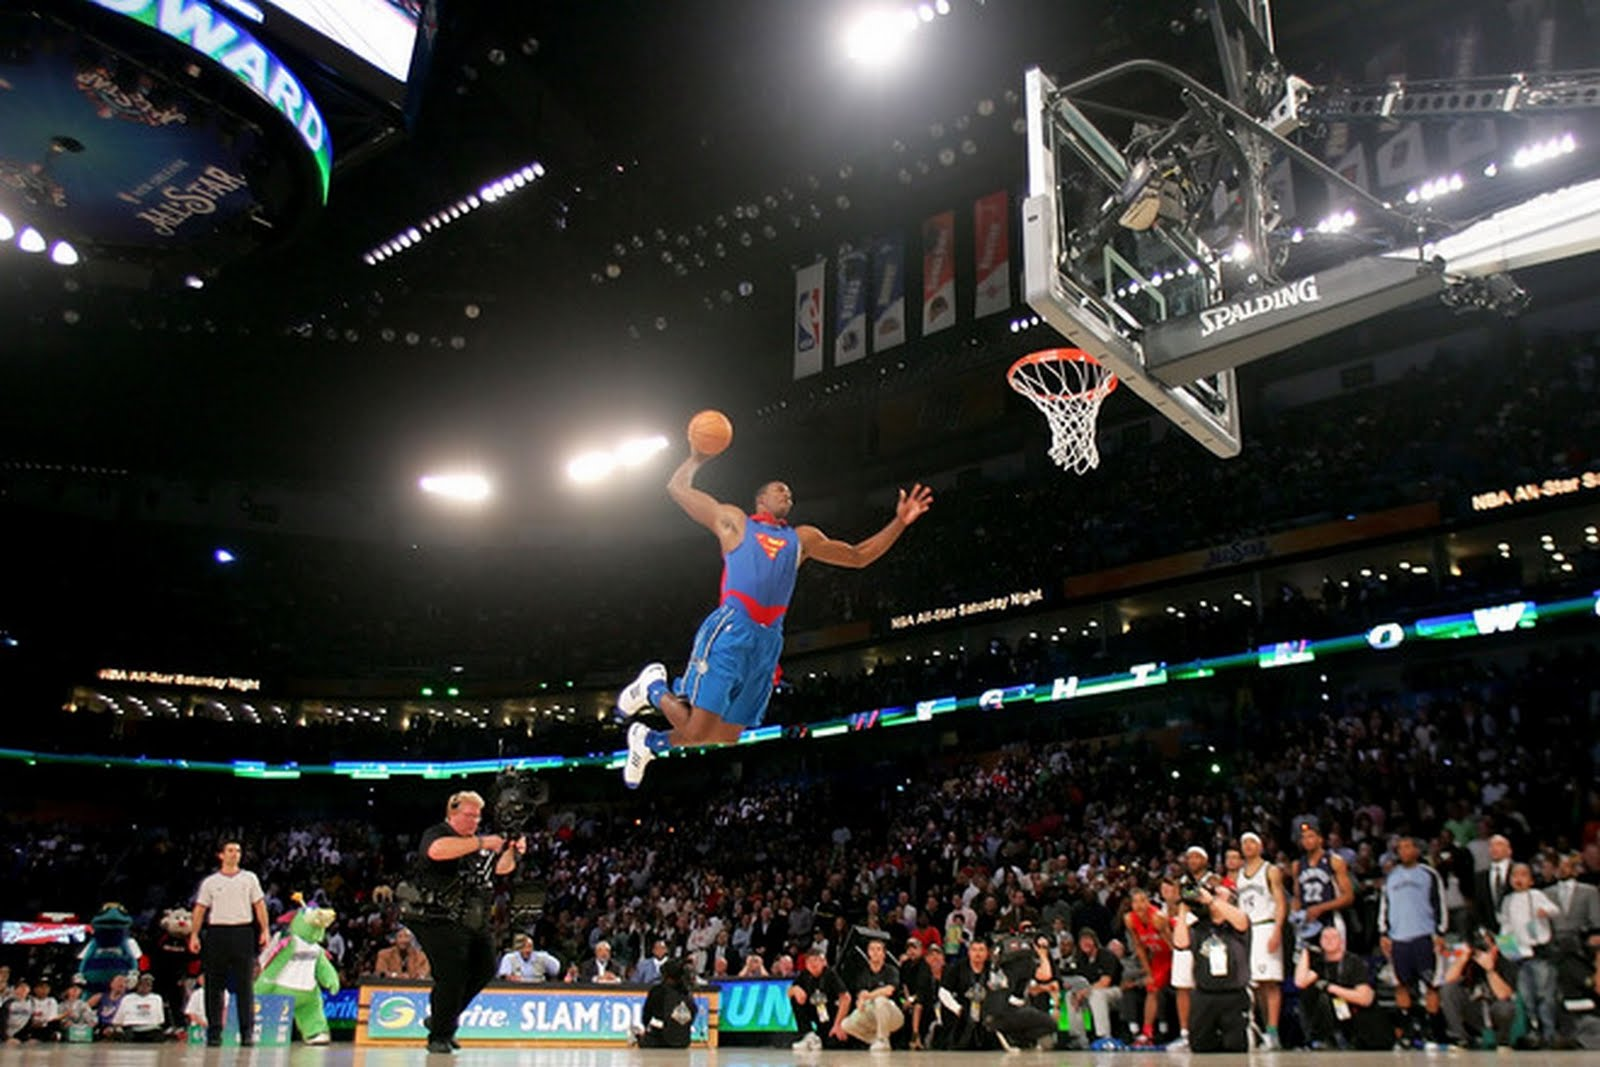 http://3.bp.blogspot.com/-fZWbBrLWuIg/Th-IUfH0suI/AAAAAAAAHP4/Ps0ZE4a_Ryo/s1600/dwight_howard-superman-dunk-wallpaper.jpg